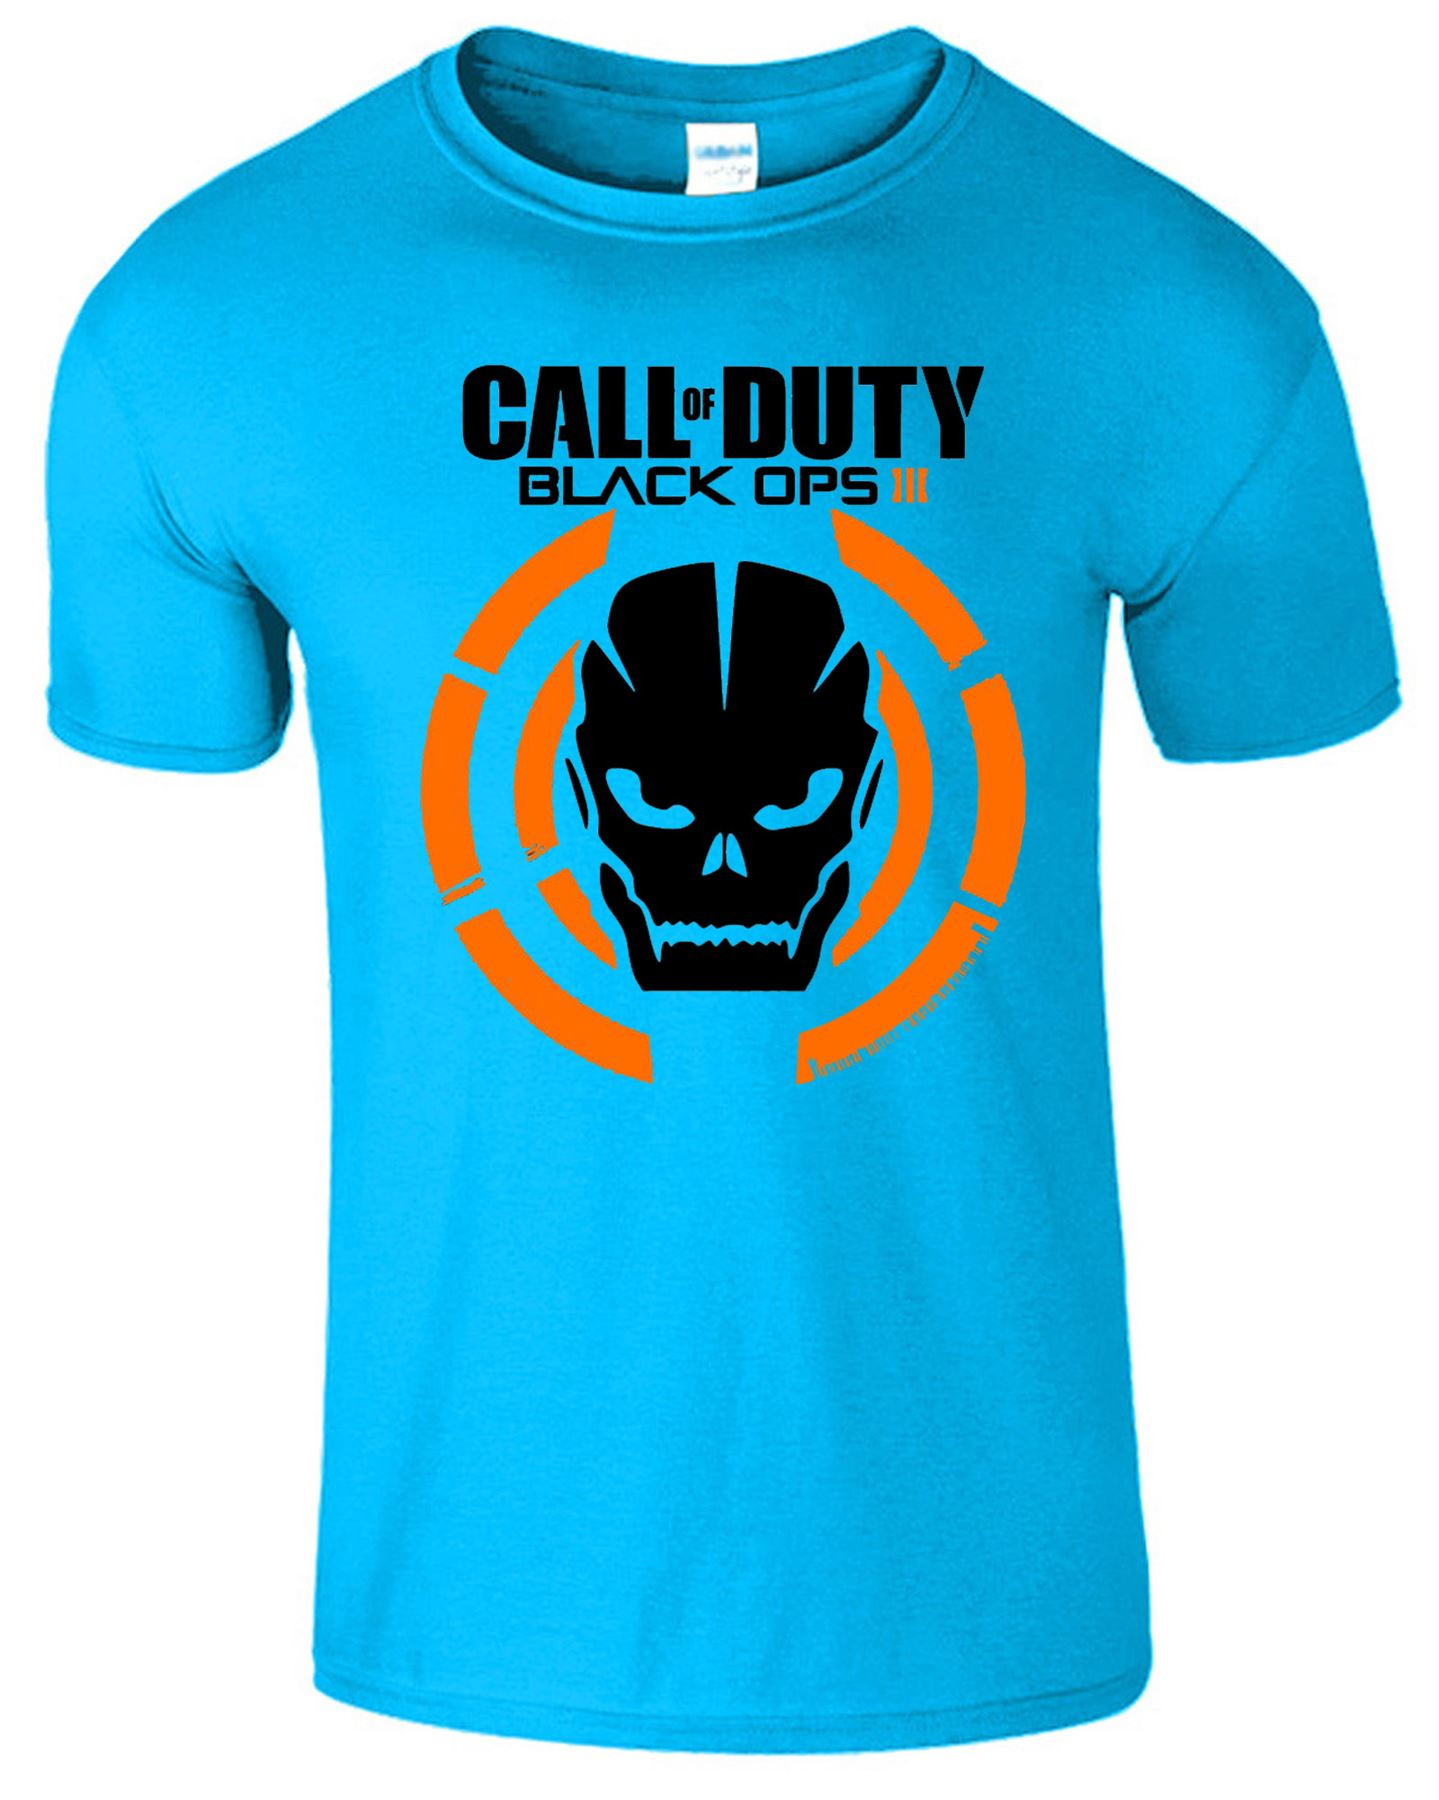 Call of duty kids t shirt black ops iii tshirt game logo for Game t shirts uk